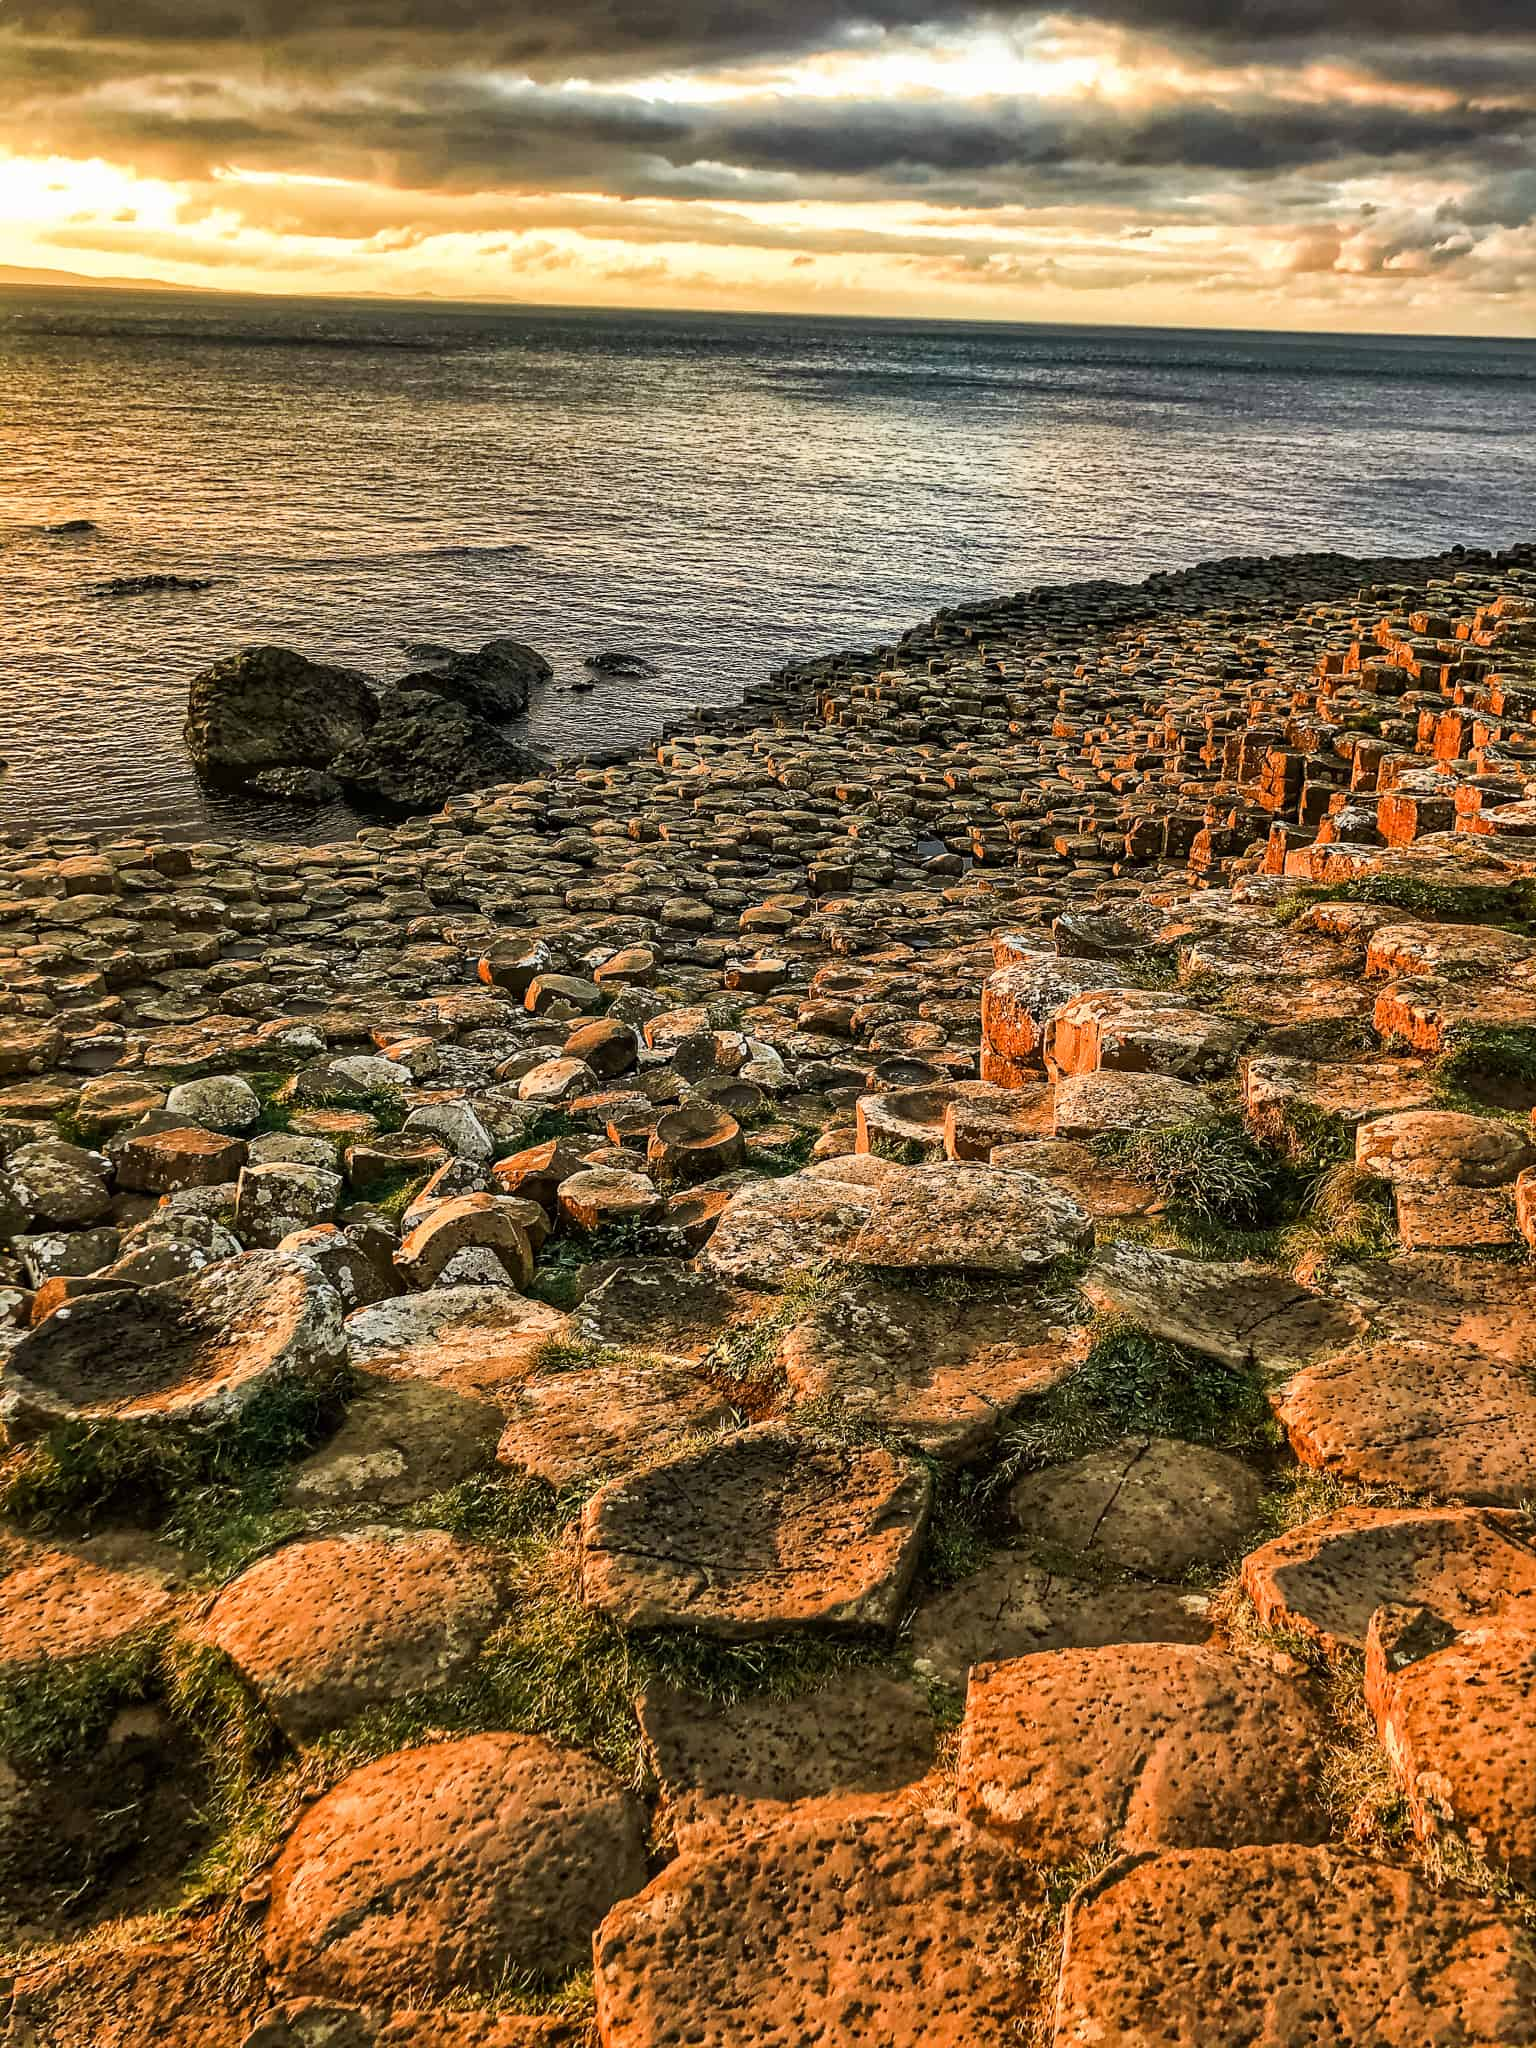 Giant's Causeway: 10 Ultimate things you need to know